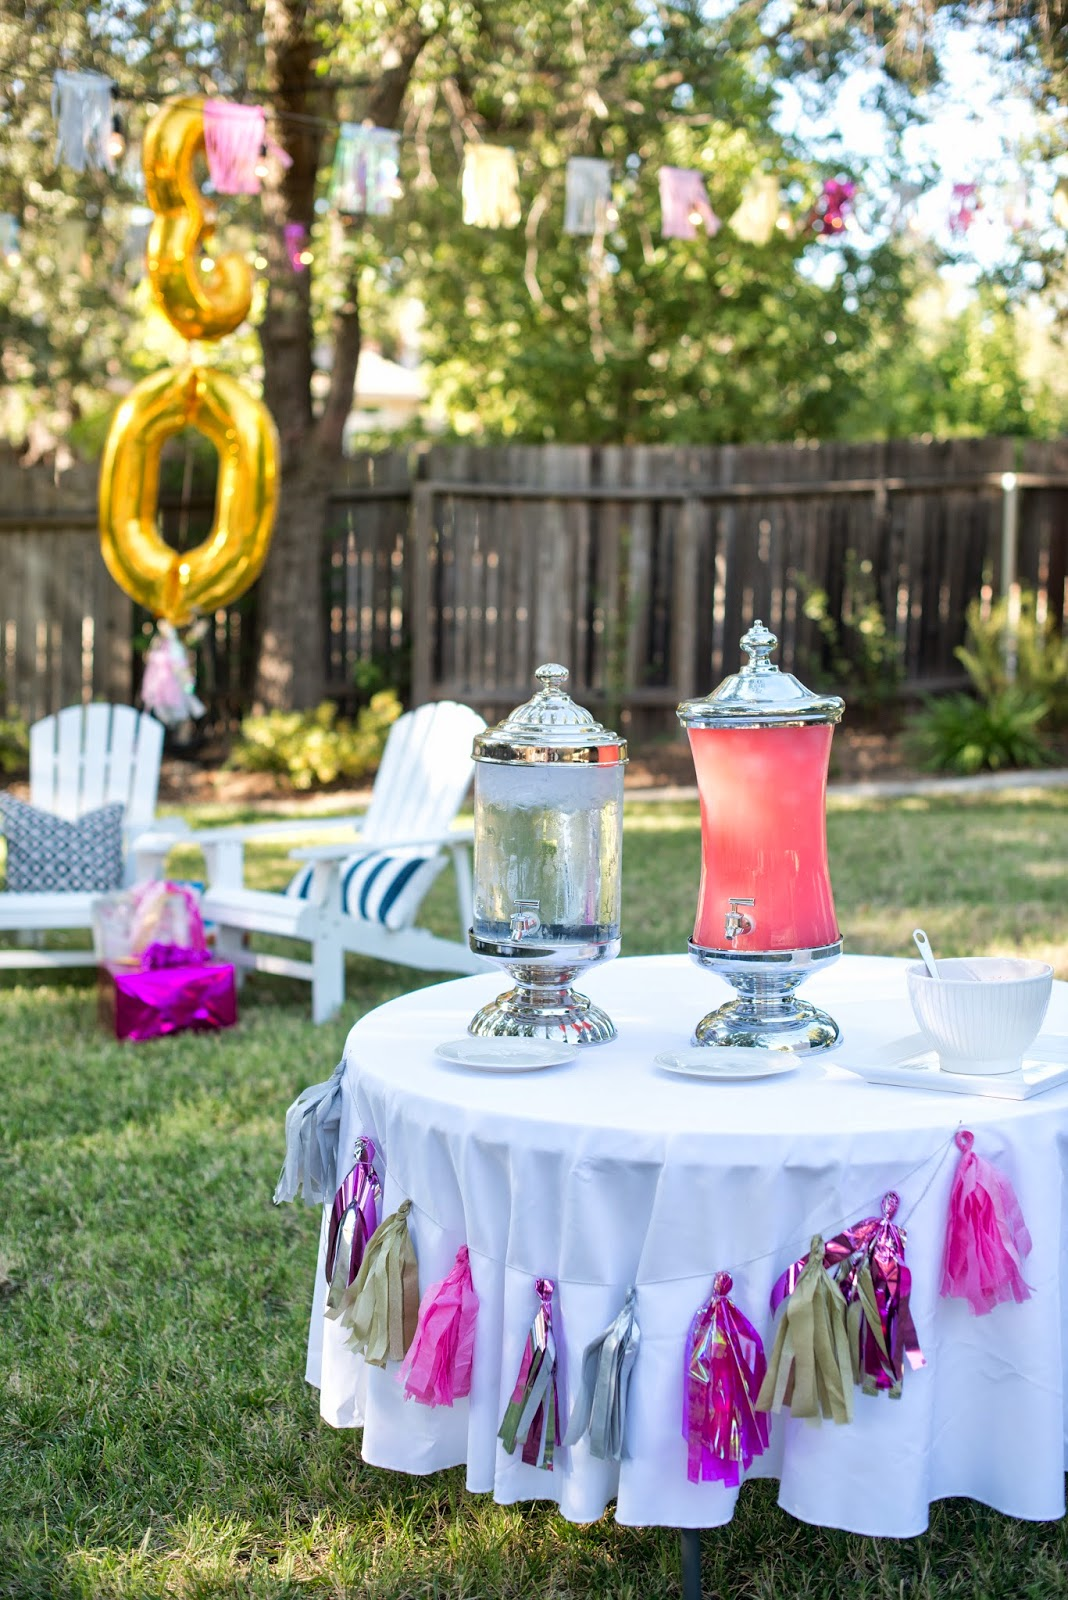 Tissue paper tassel tutorial - For My Sparkling 30th Birthday Party I Made A Bunch Of Tissue Paper Tassels To Decorate The Food Tables Tissue Paper Tassels Are Such An Easy And